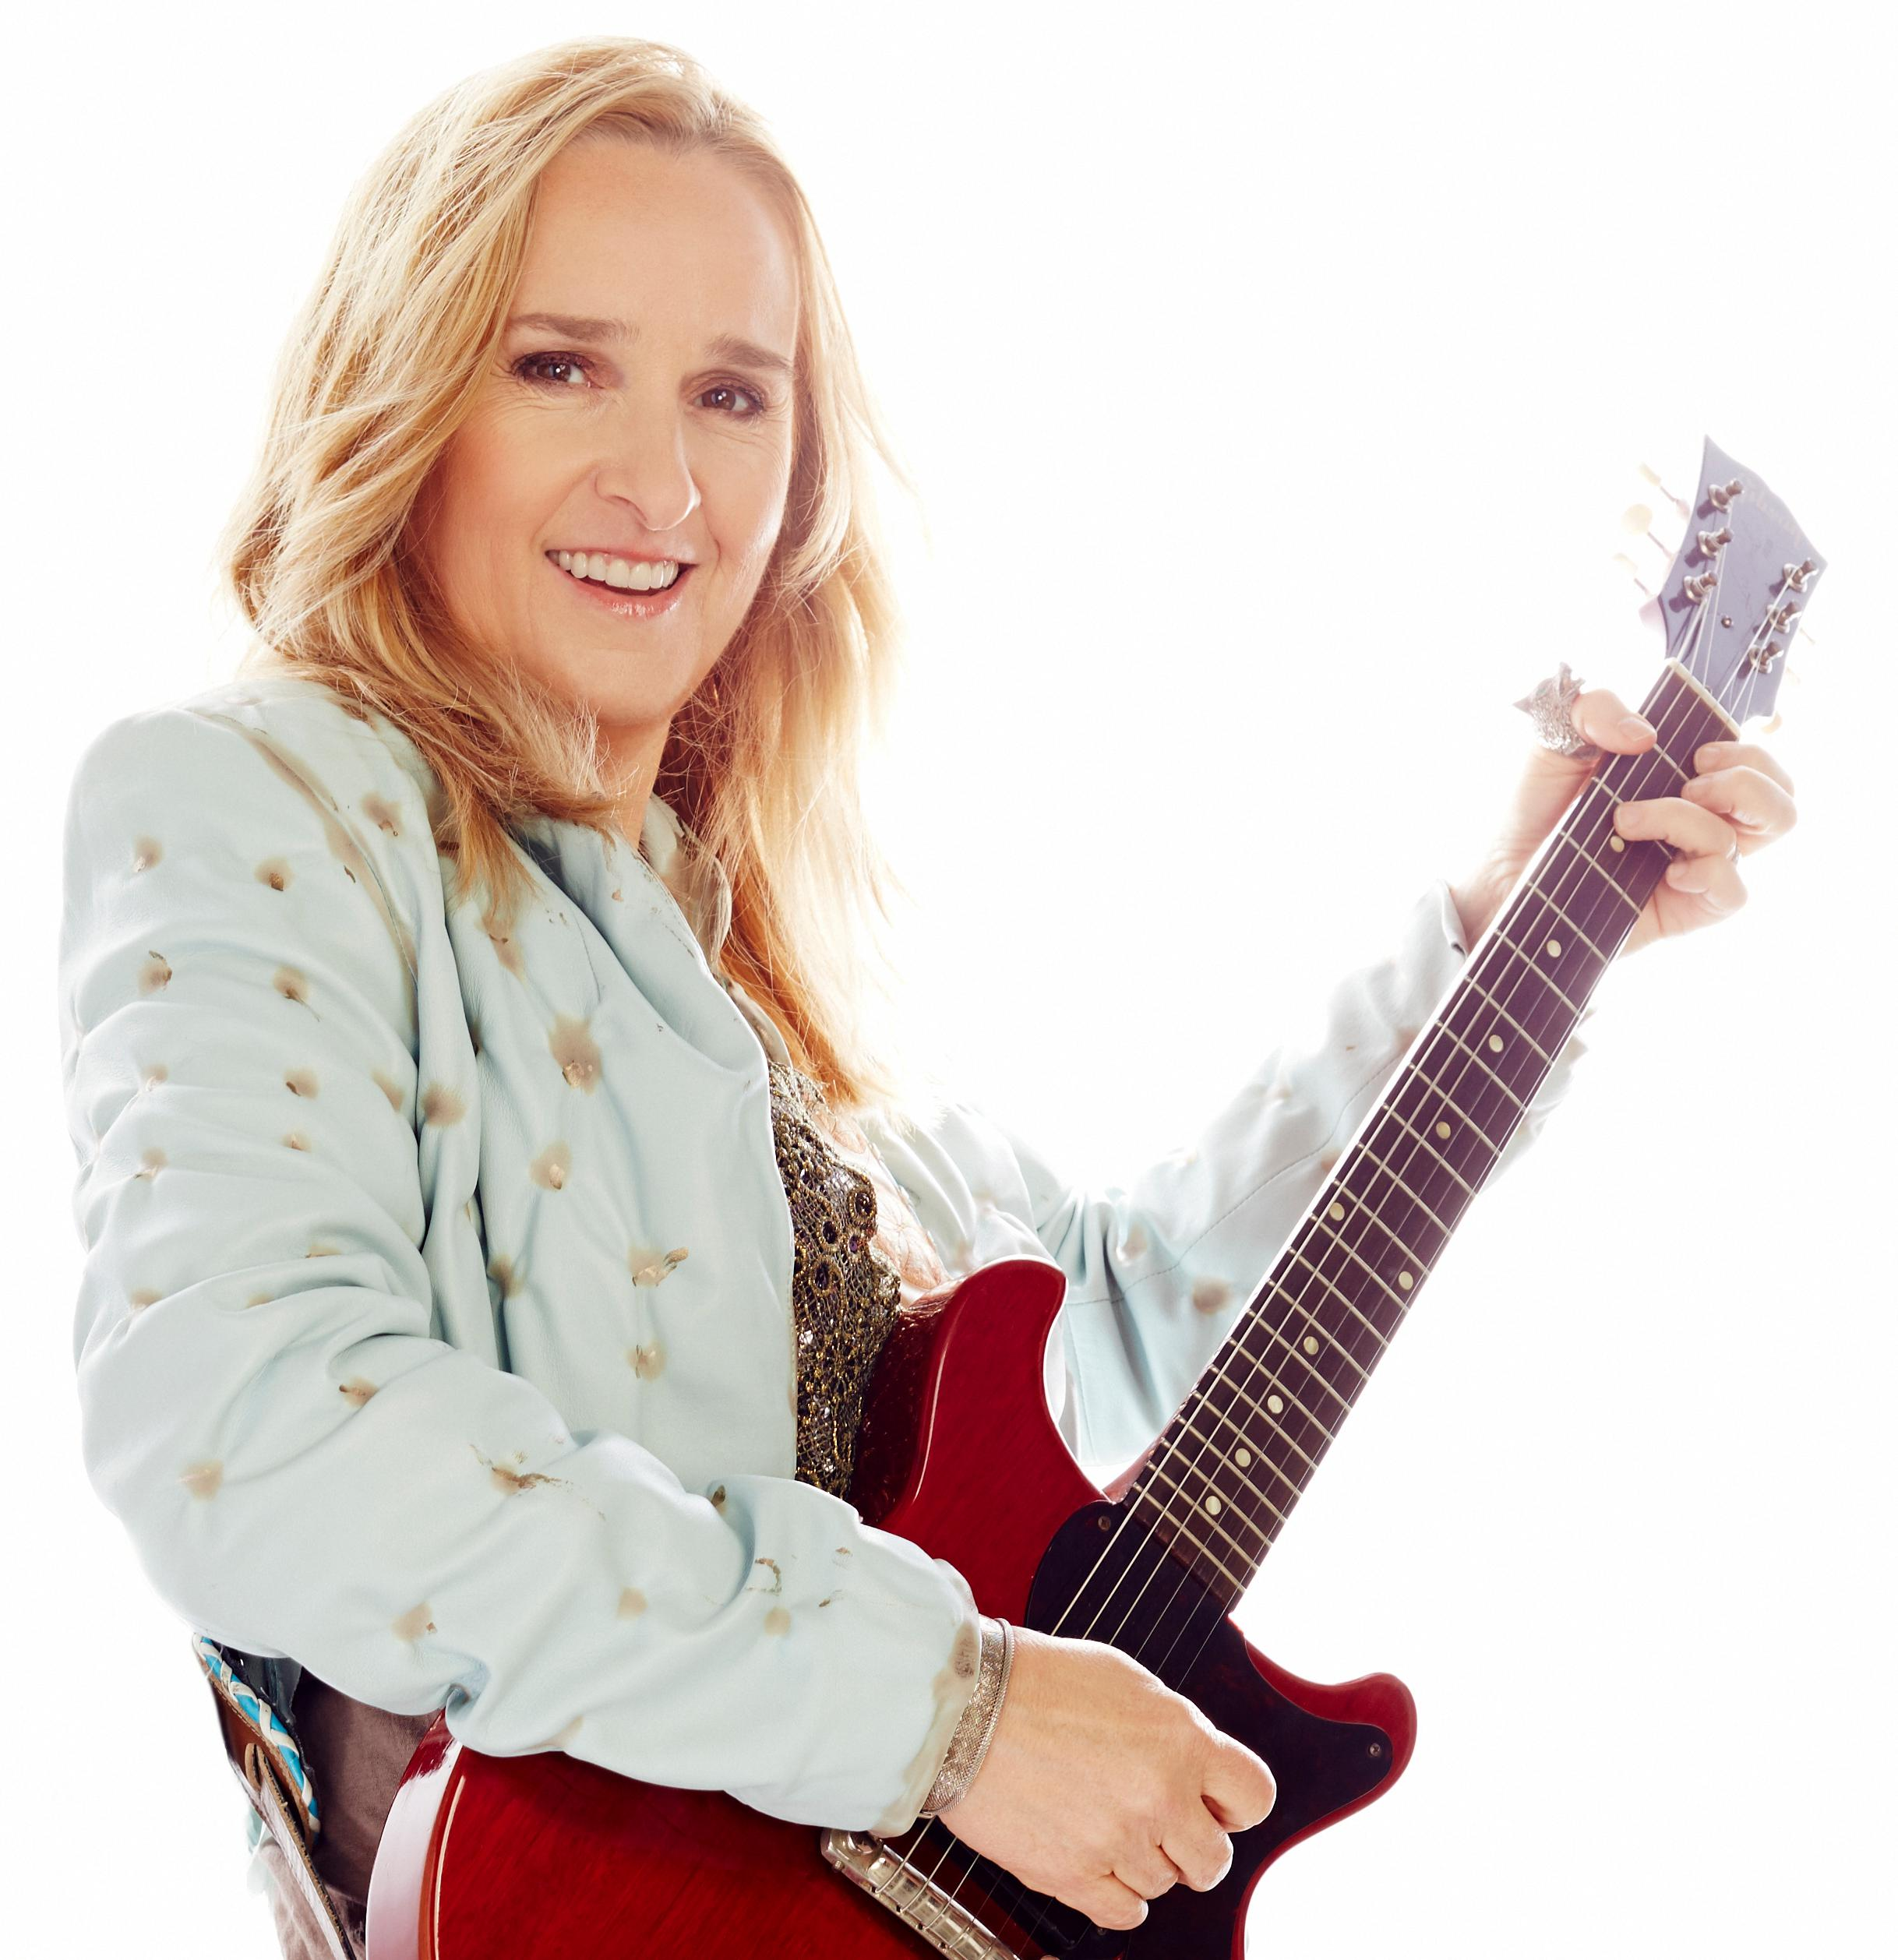 melissa ethridge photojohntsiavis08 crop02